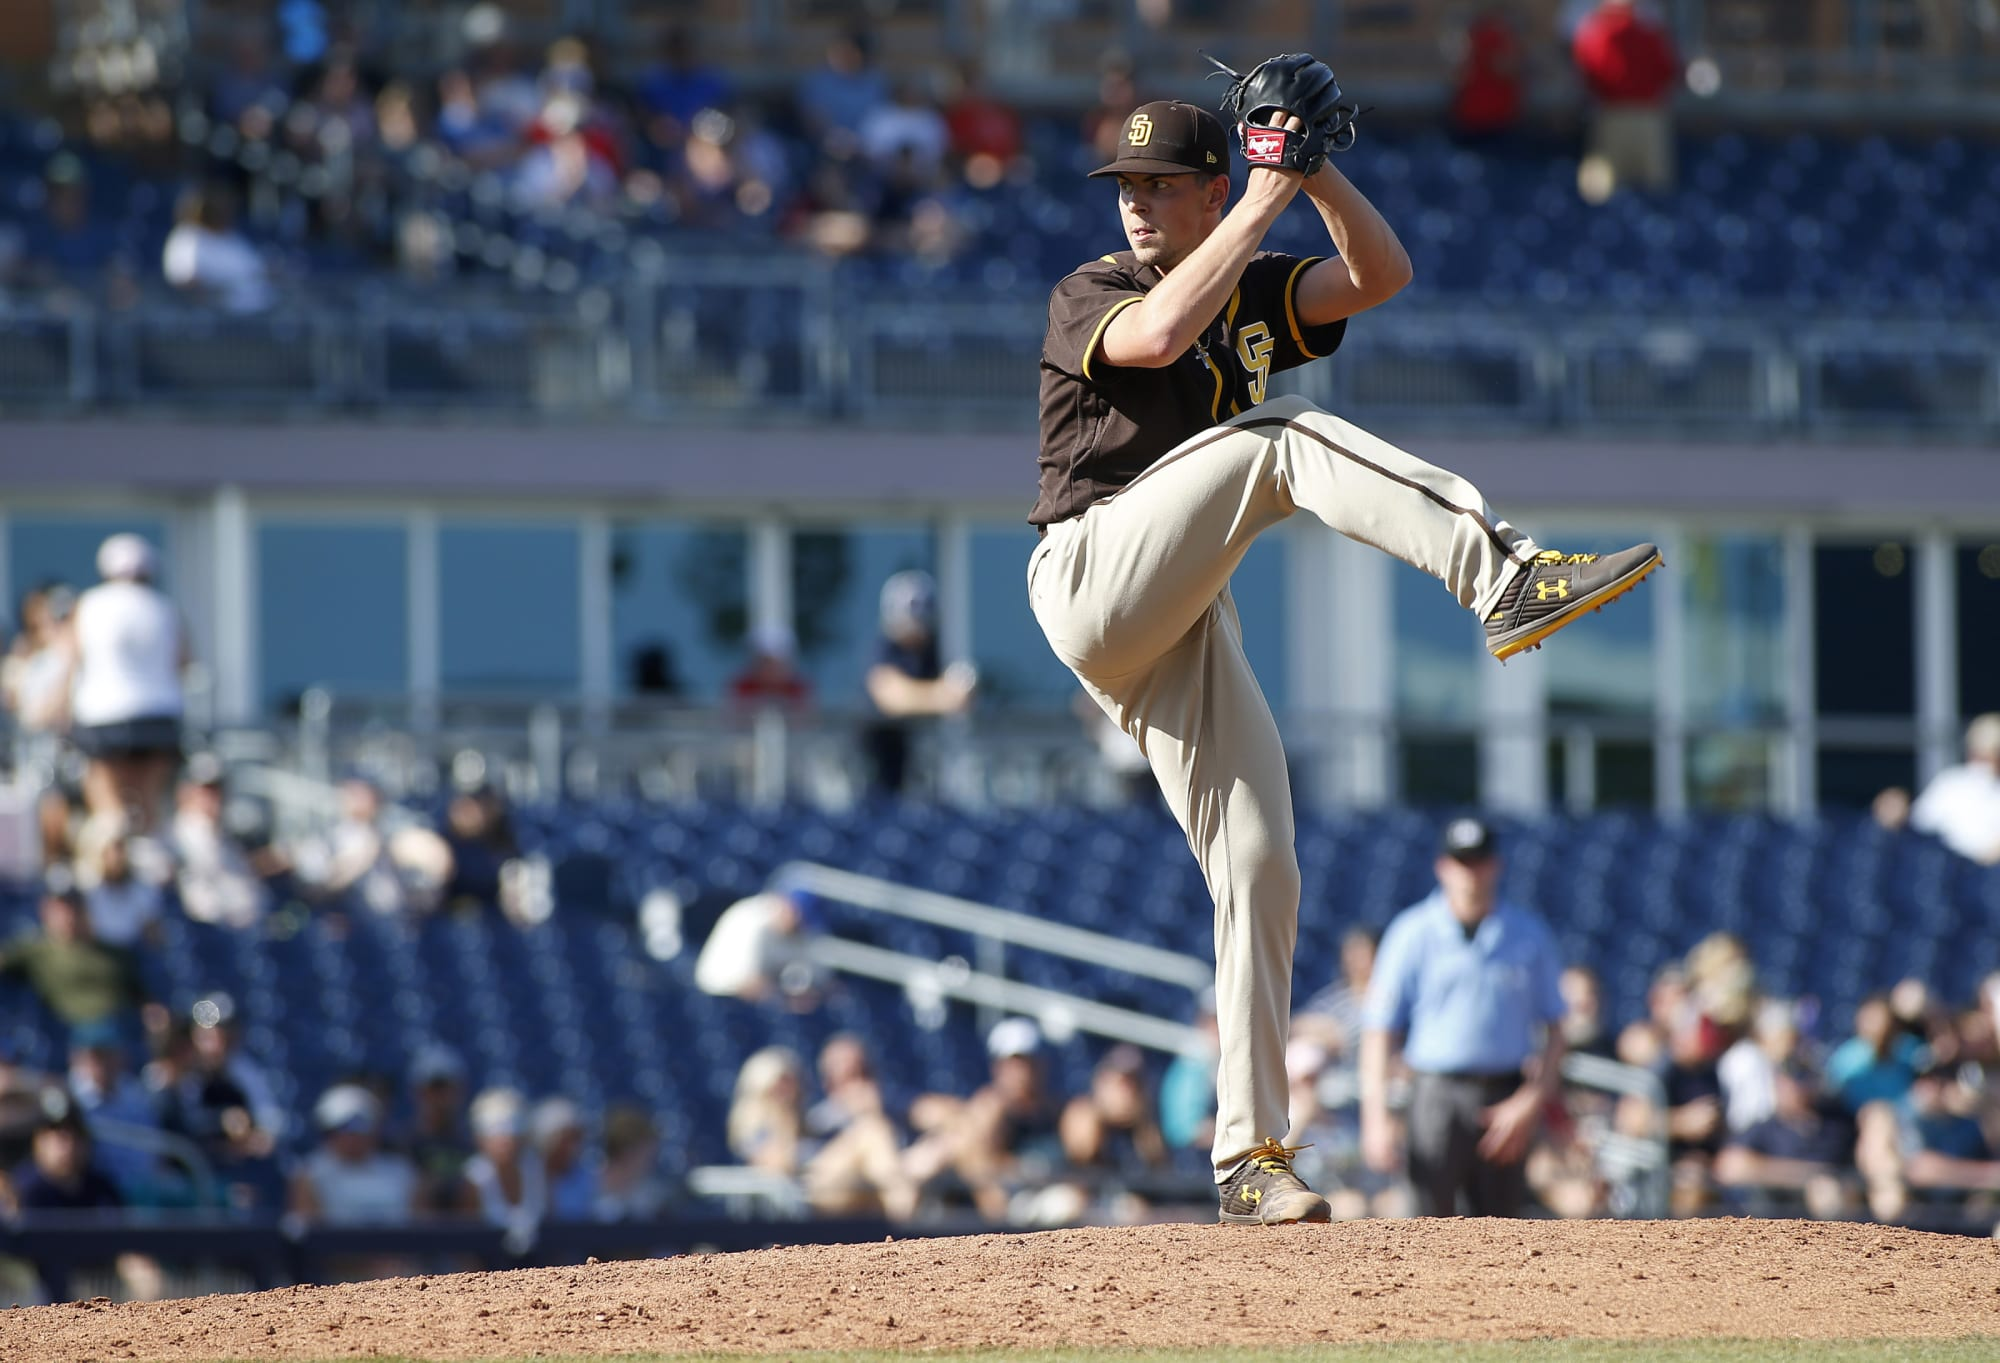 Padres: Is MacKenzie Gore going to fill Matt Strahm's role this year?